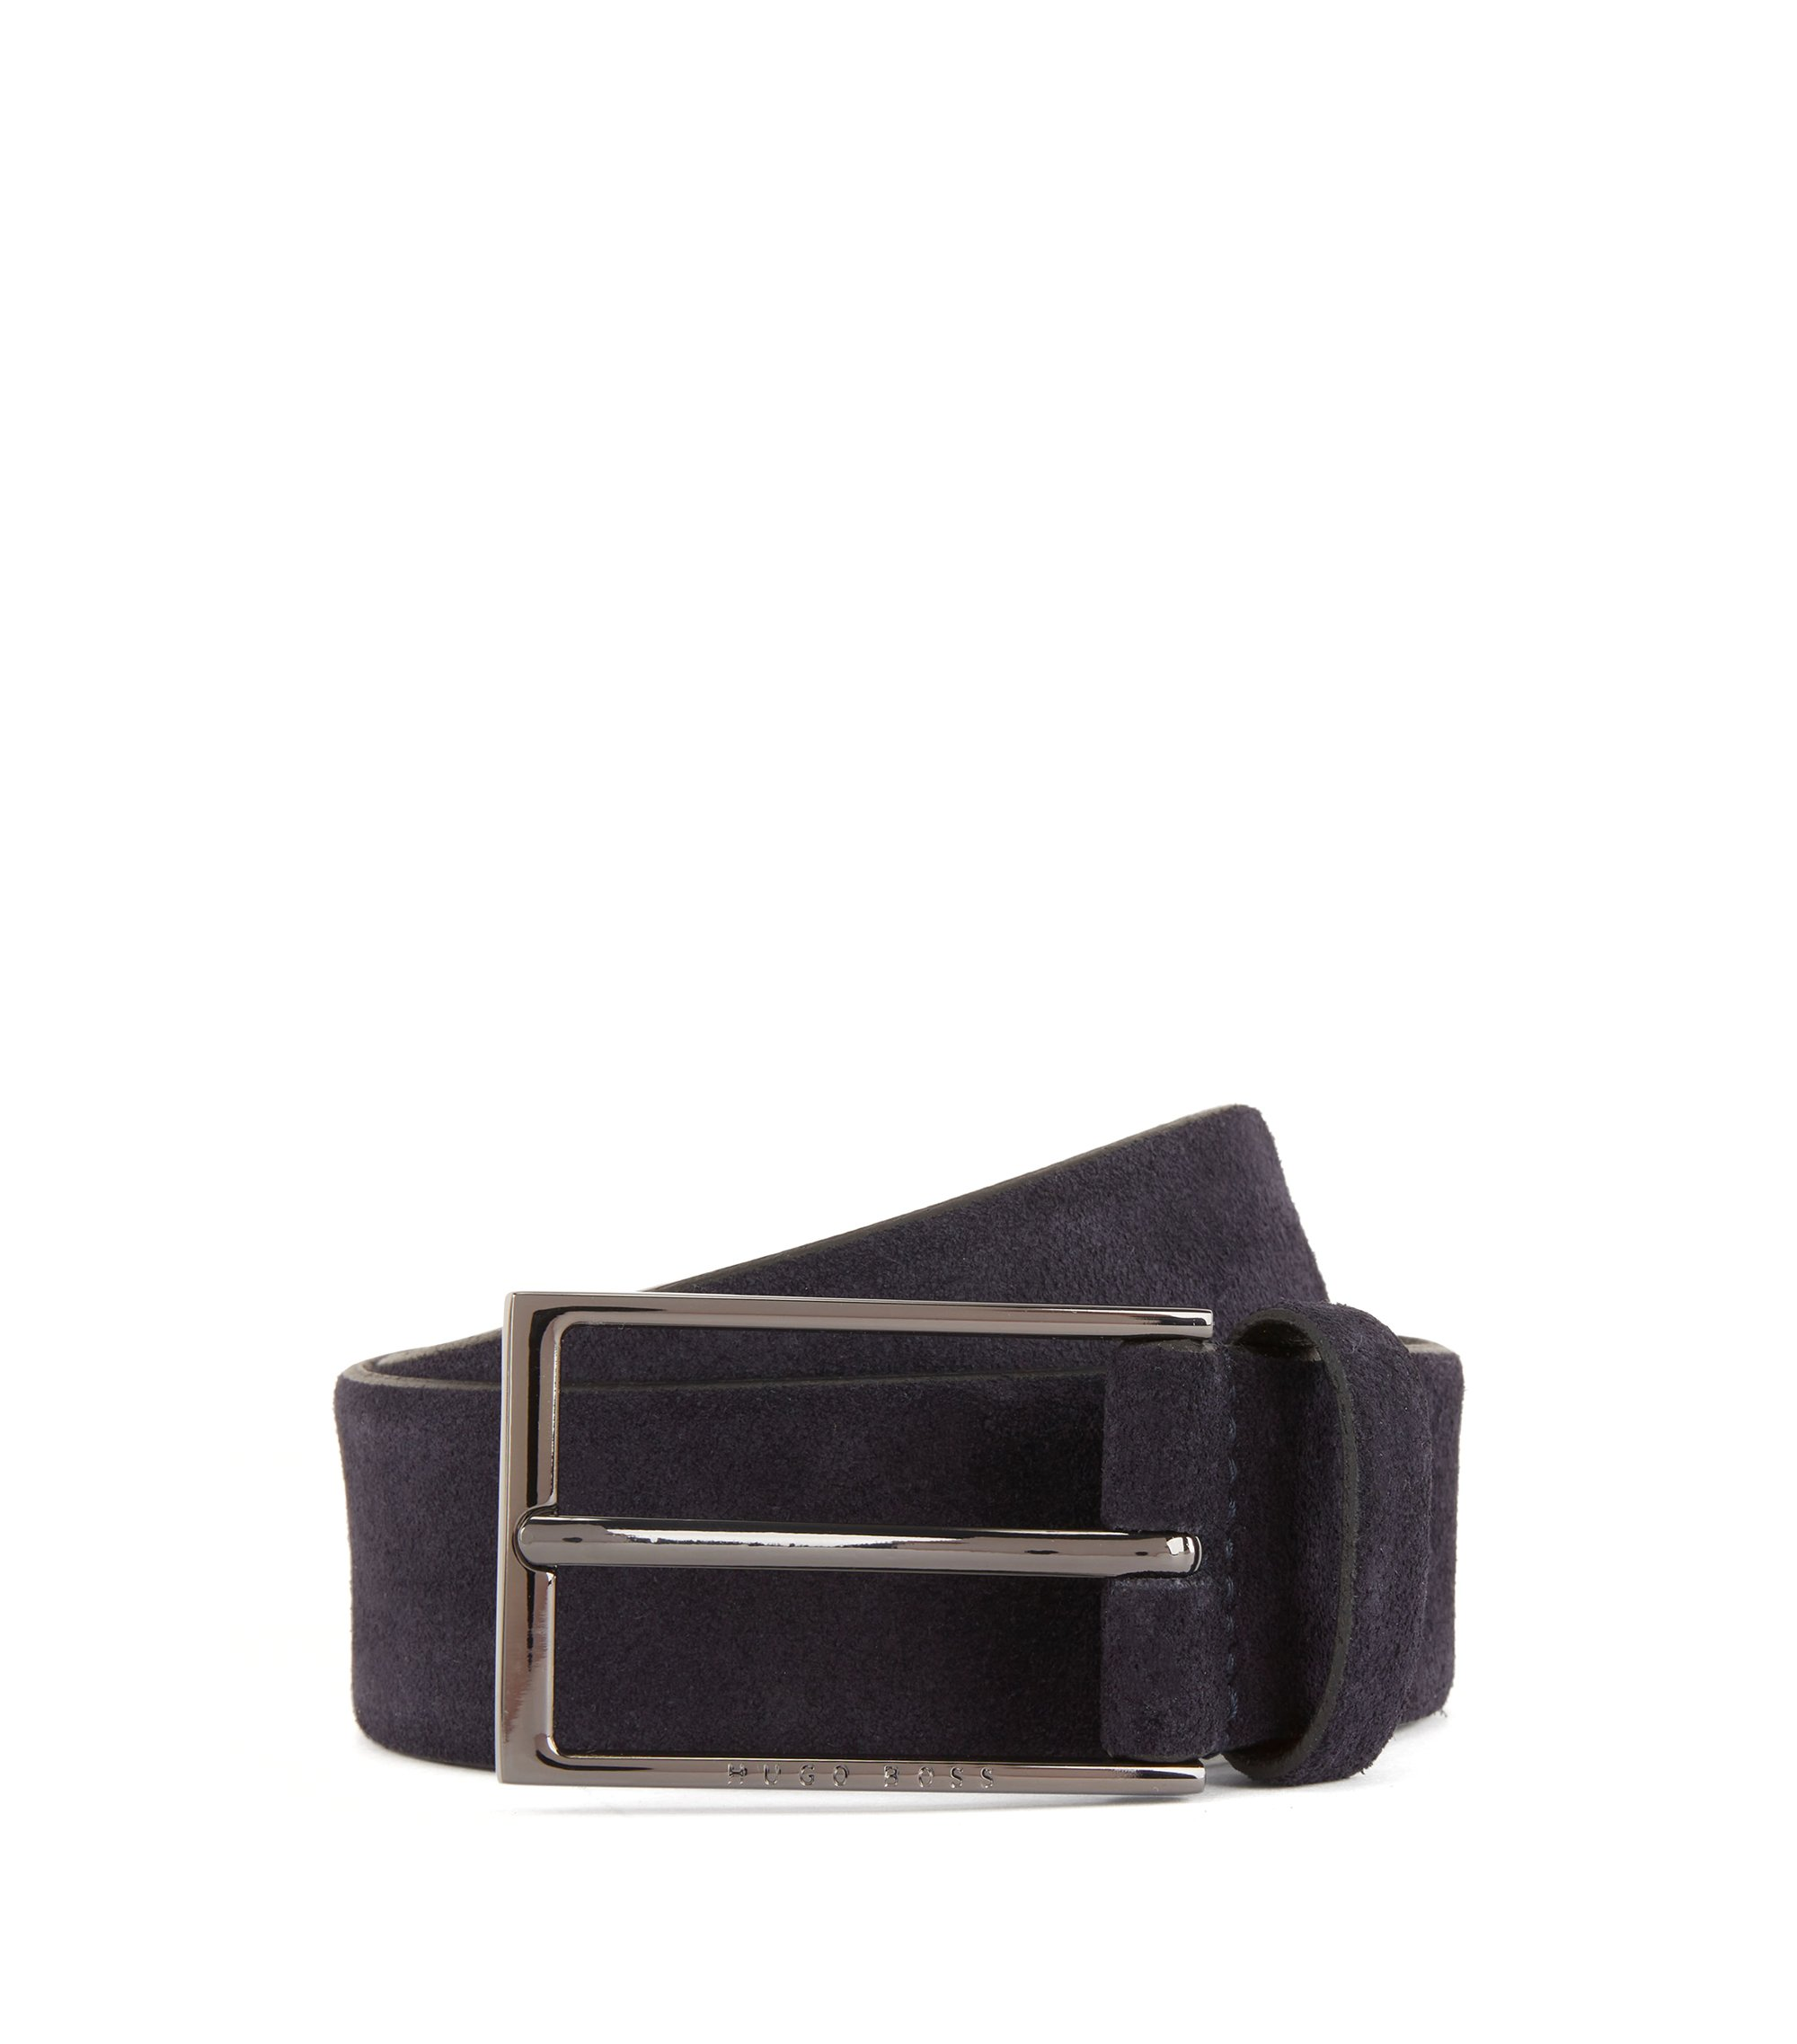 Soft suede leather belt with polished gunmetal pin buckle, Dark Blue